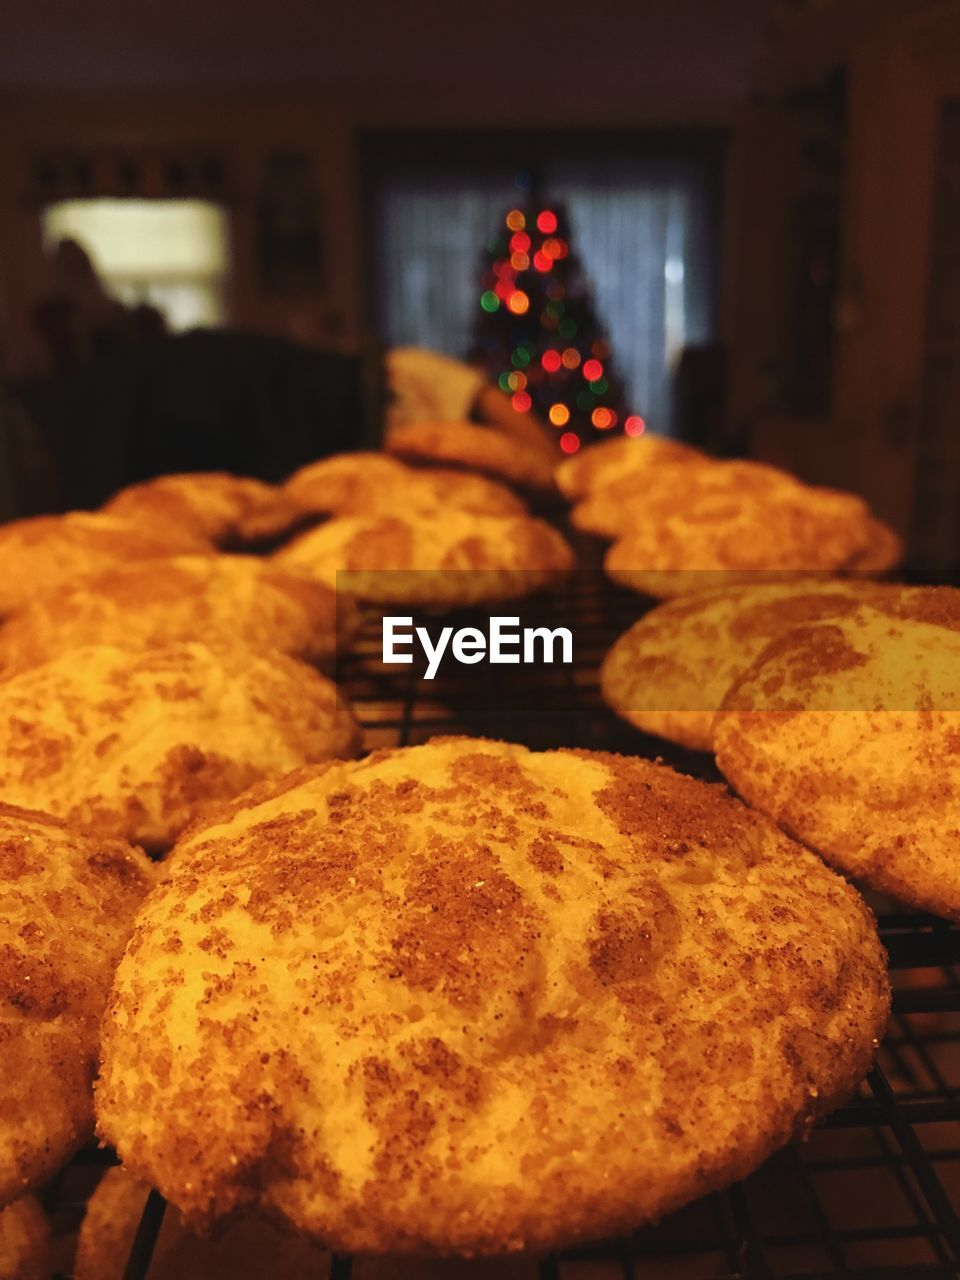 christmas, food, food and drink, indoors, holiday, freshness, celebration, no people, christmas tree, baked, holiday - event, close-up, focus on foreground, christmas lights, christmas decoration, illuminated, ready-to-eat, sweet food, christmas ornament, temptation, snack